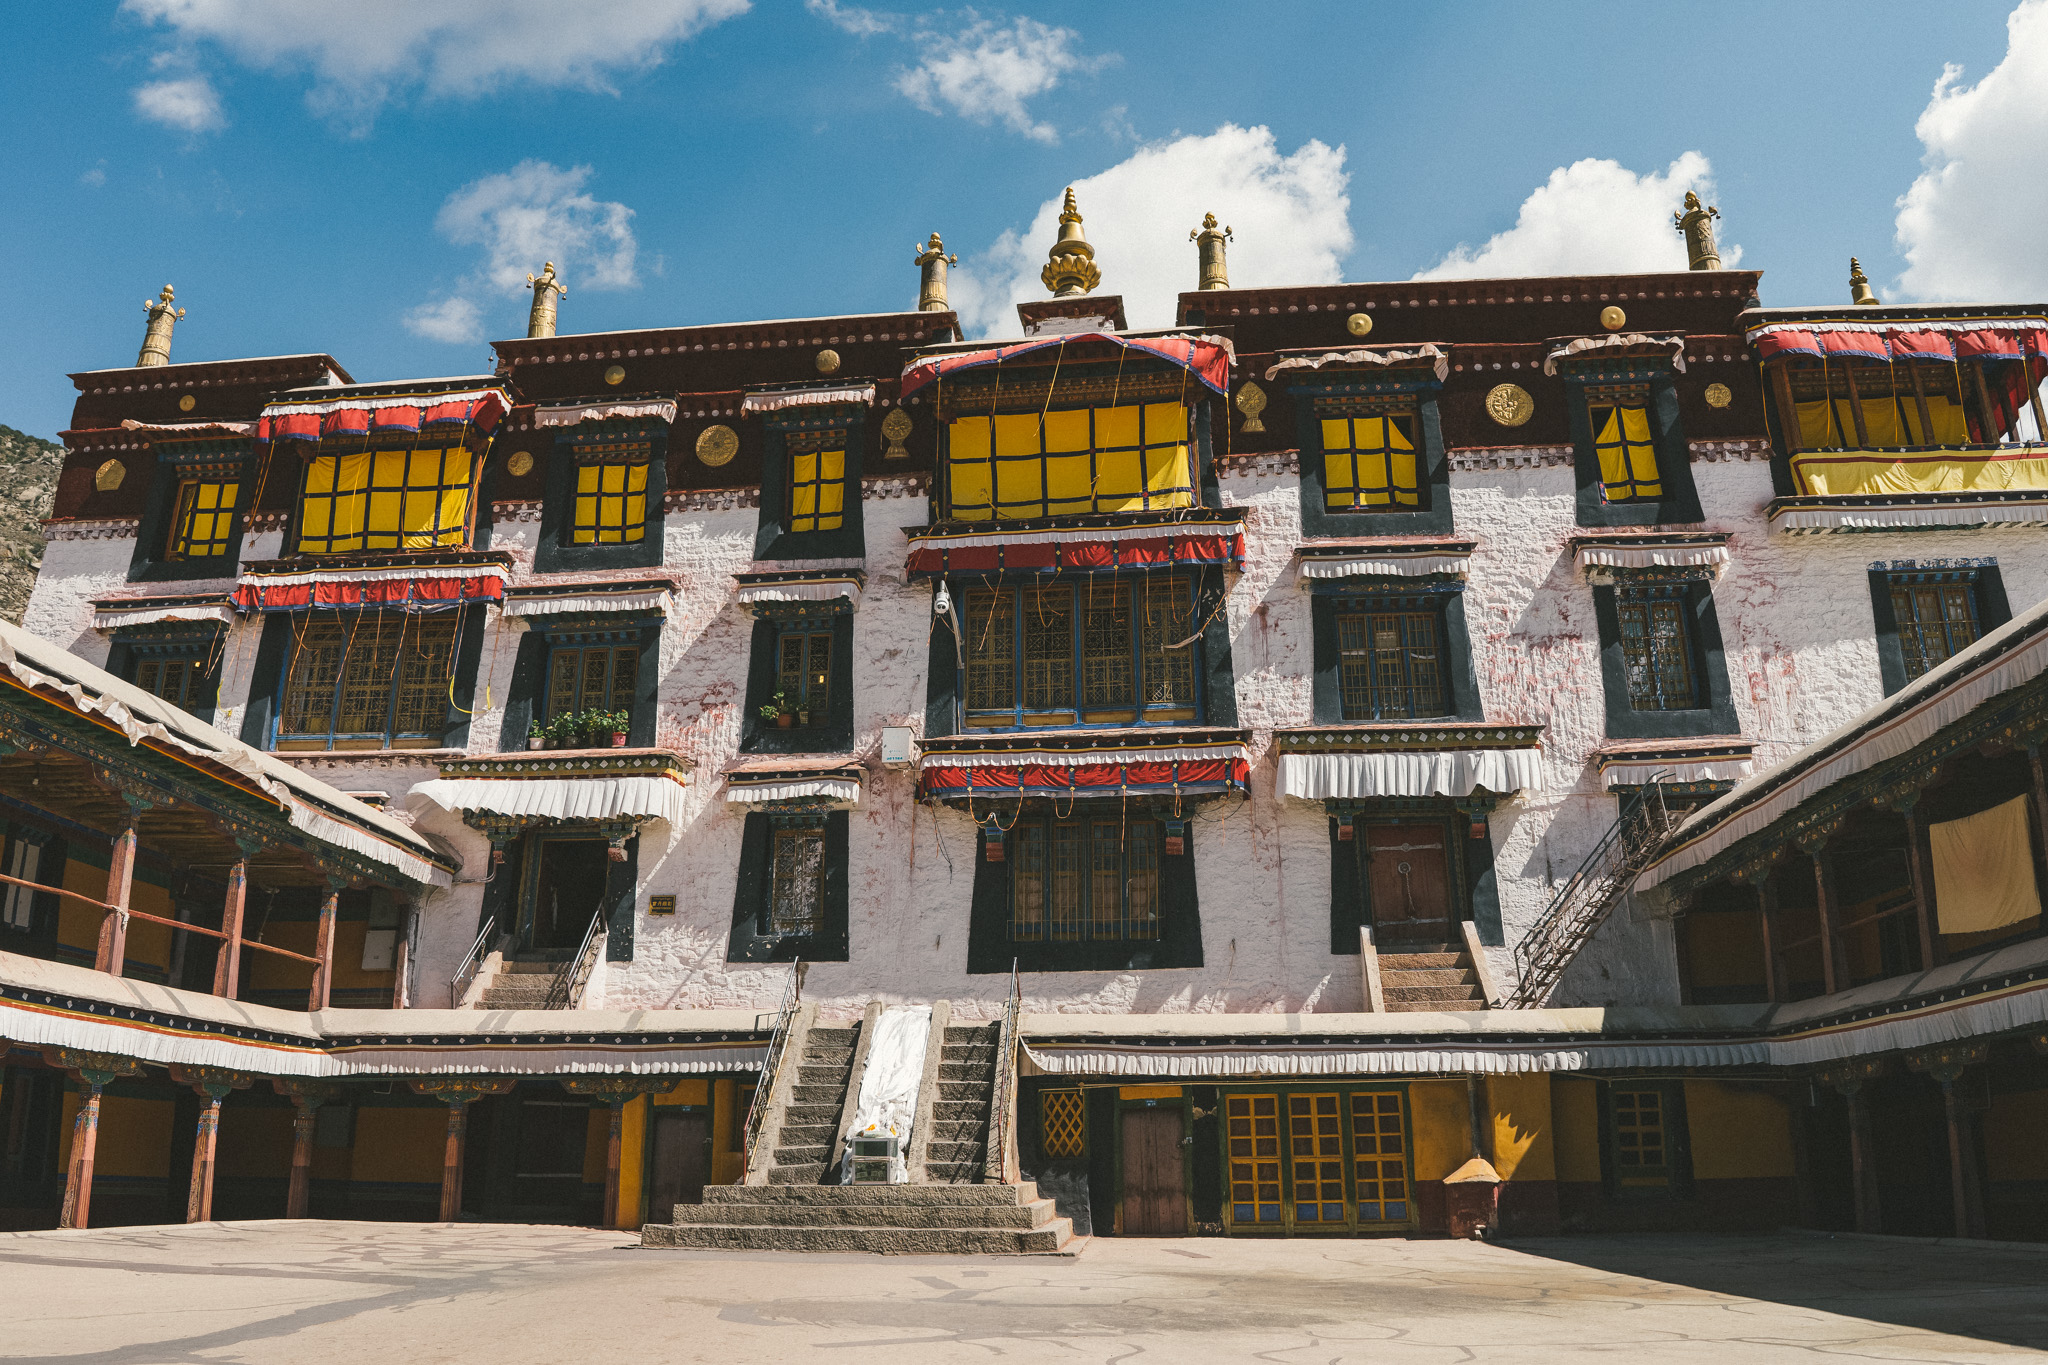 A monastery in Tibet